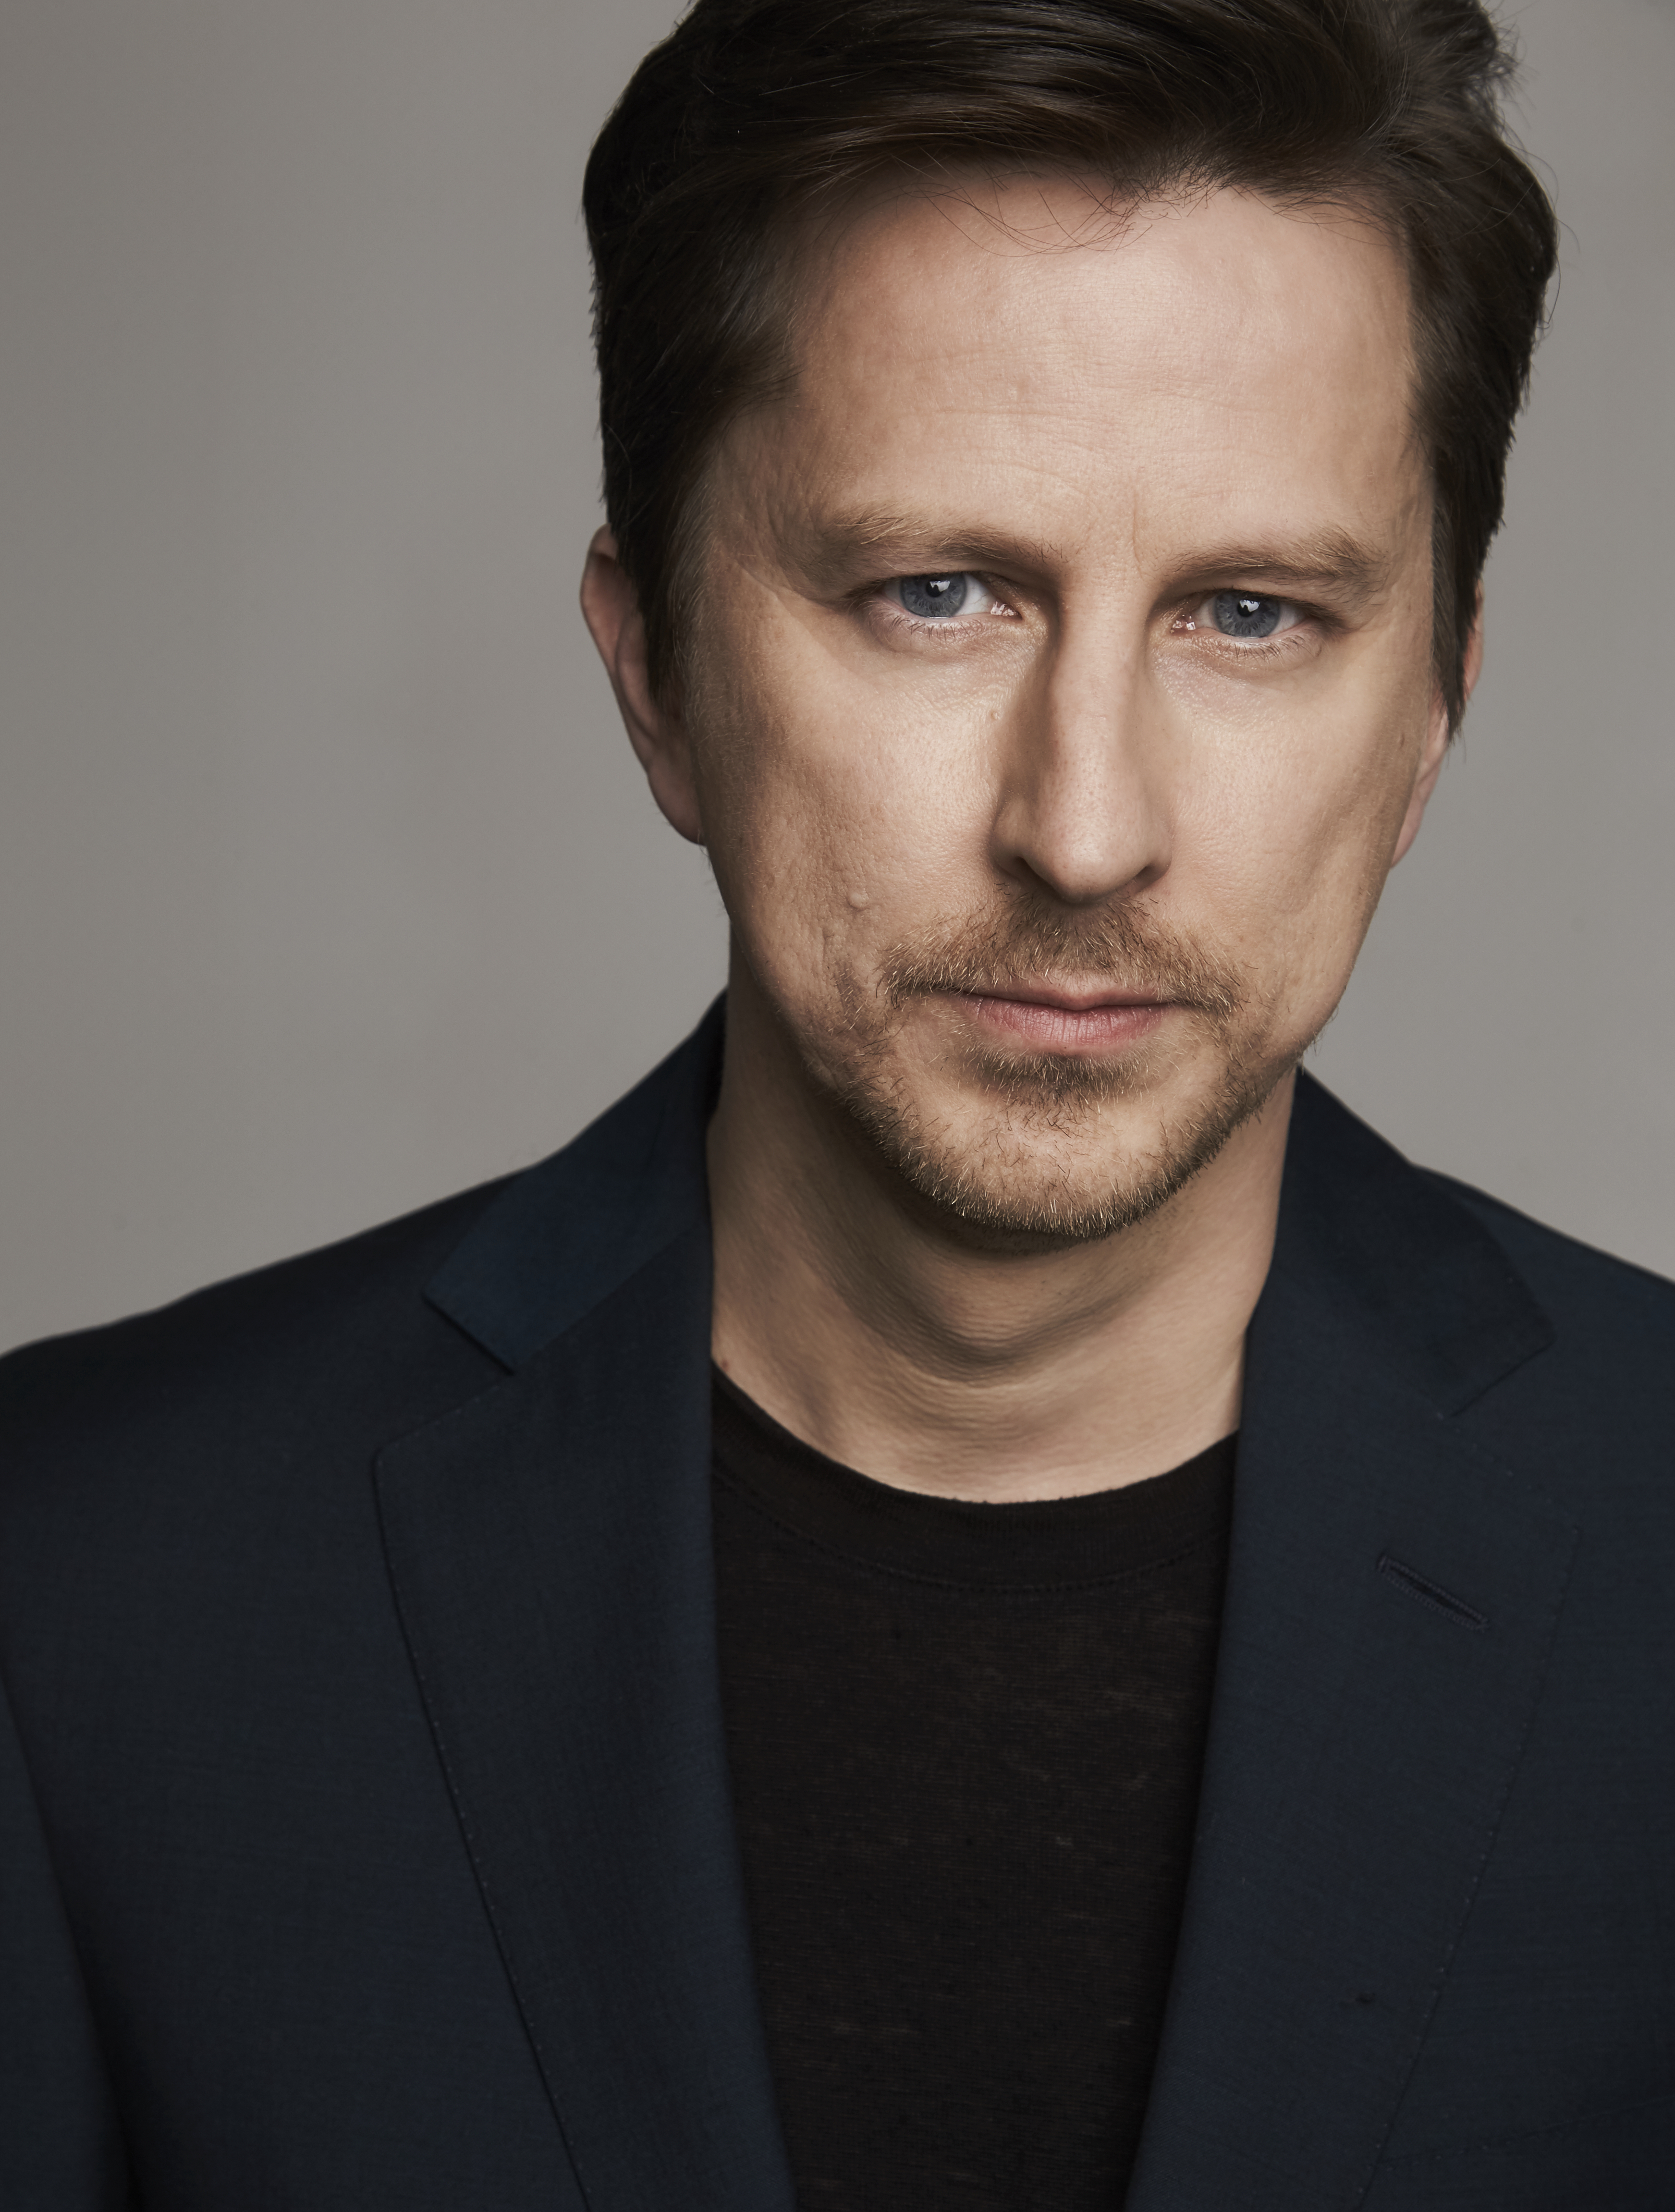 File:Lee Ingleby.jpg